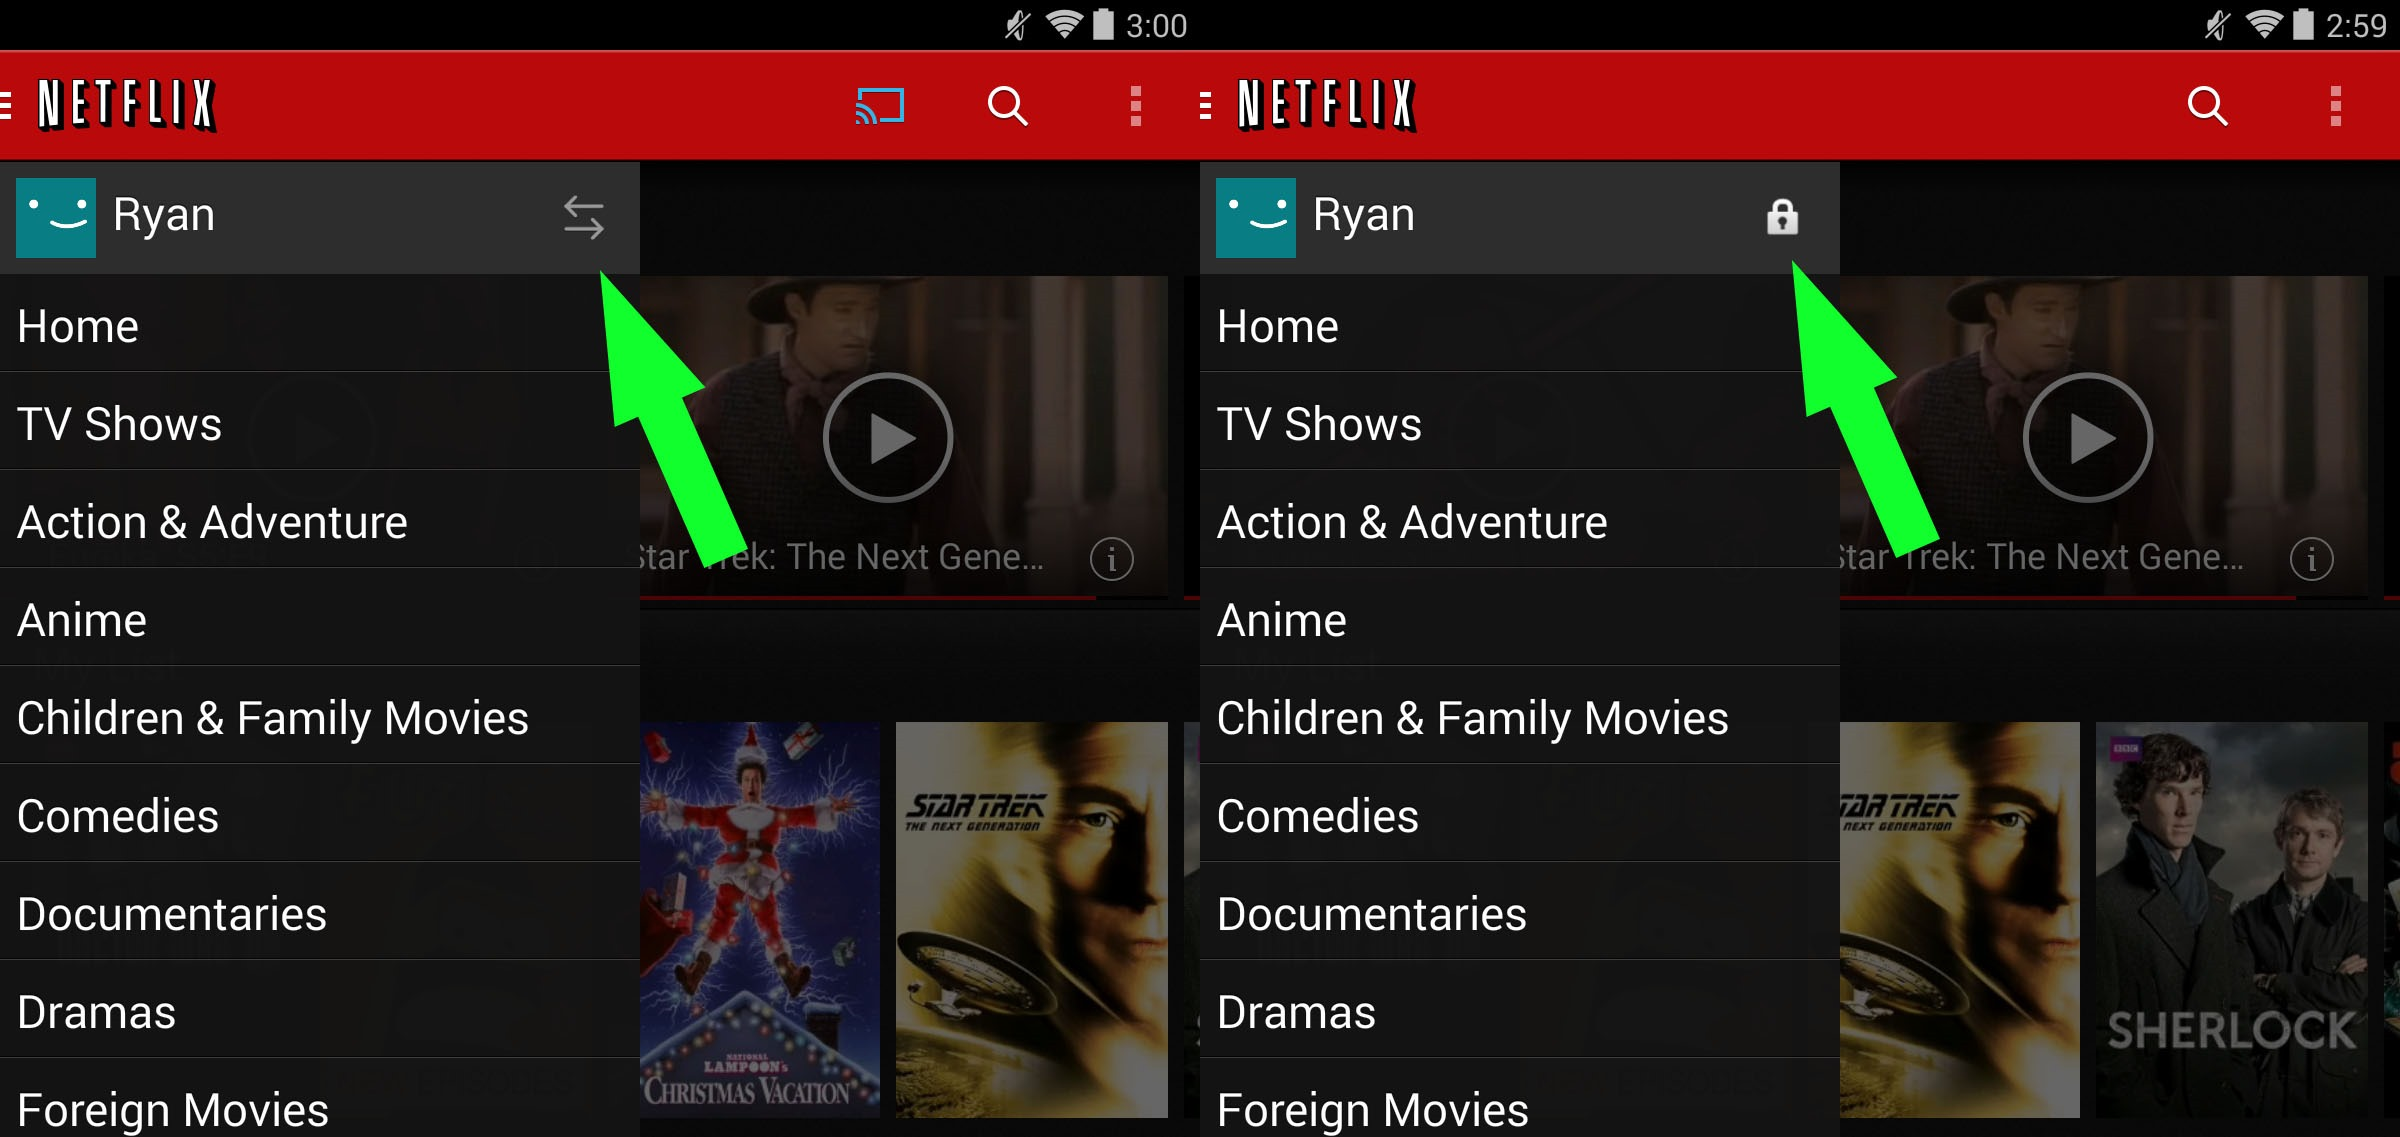 Accounts can be used to prevent profile switching in updated netflix